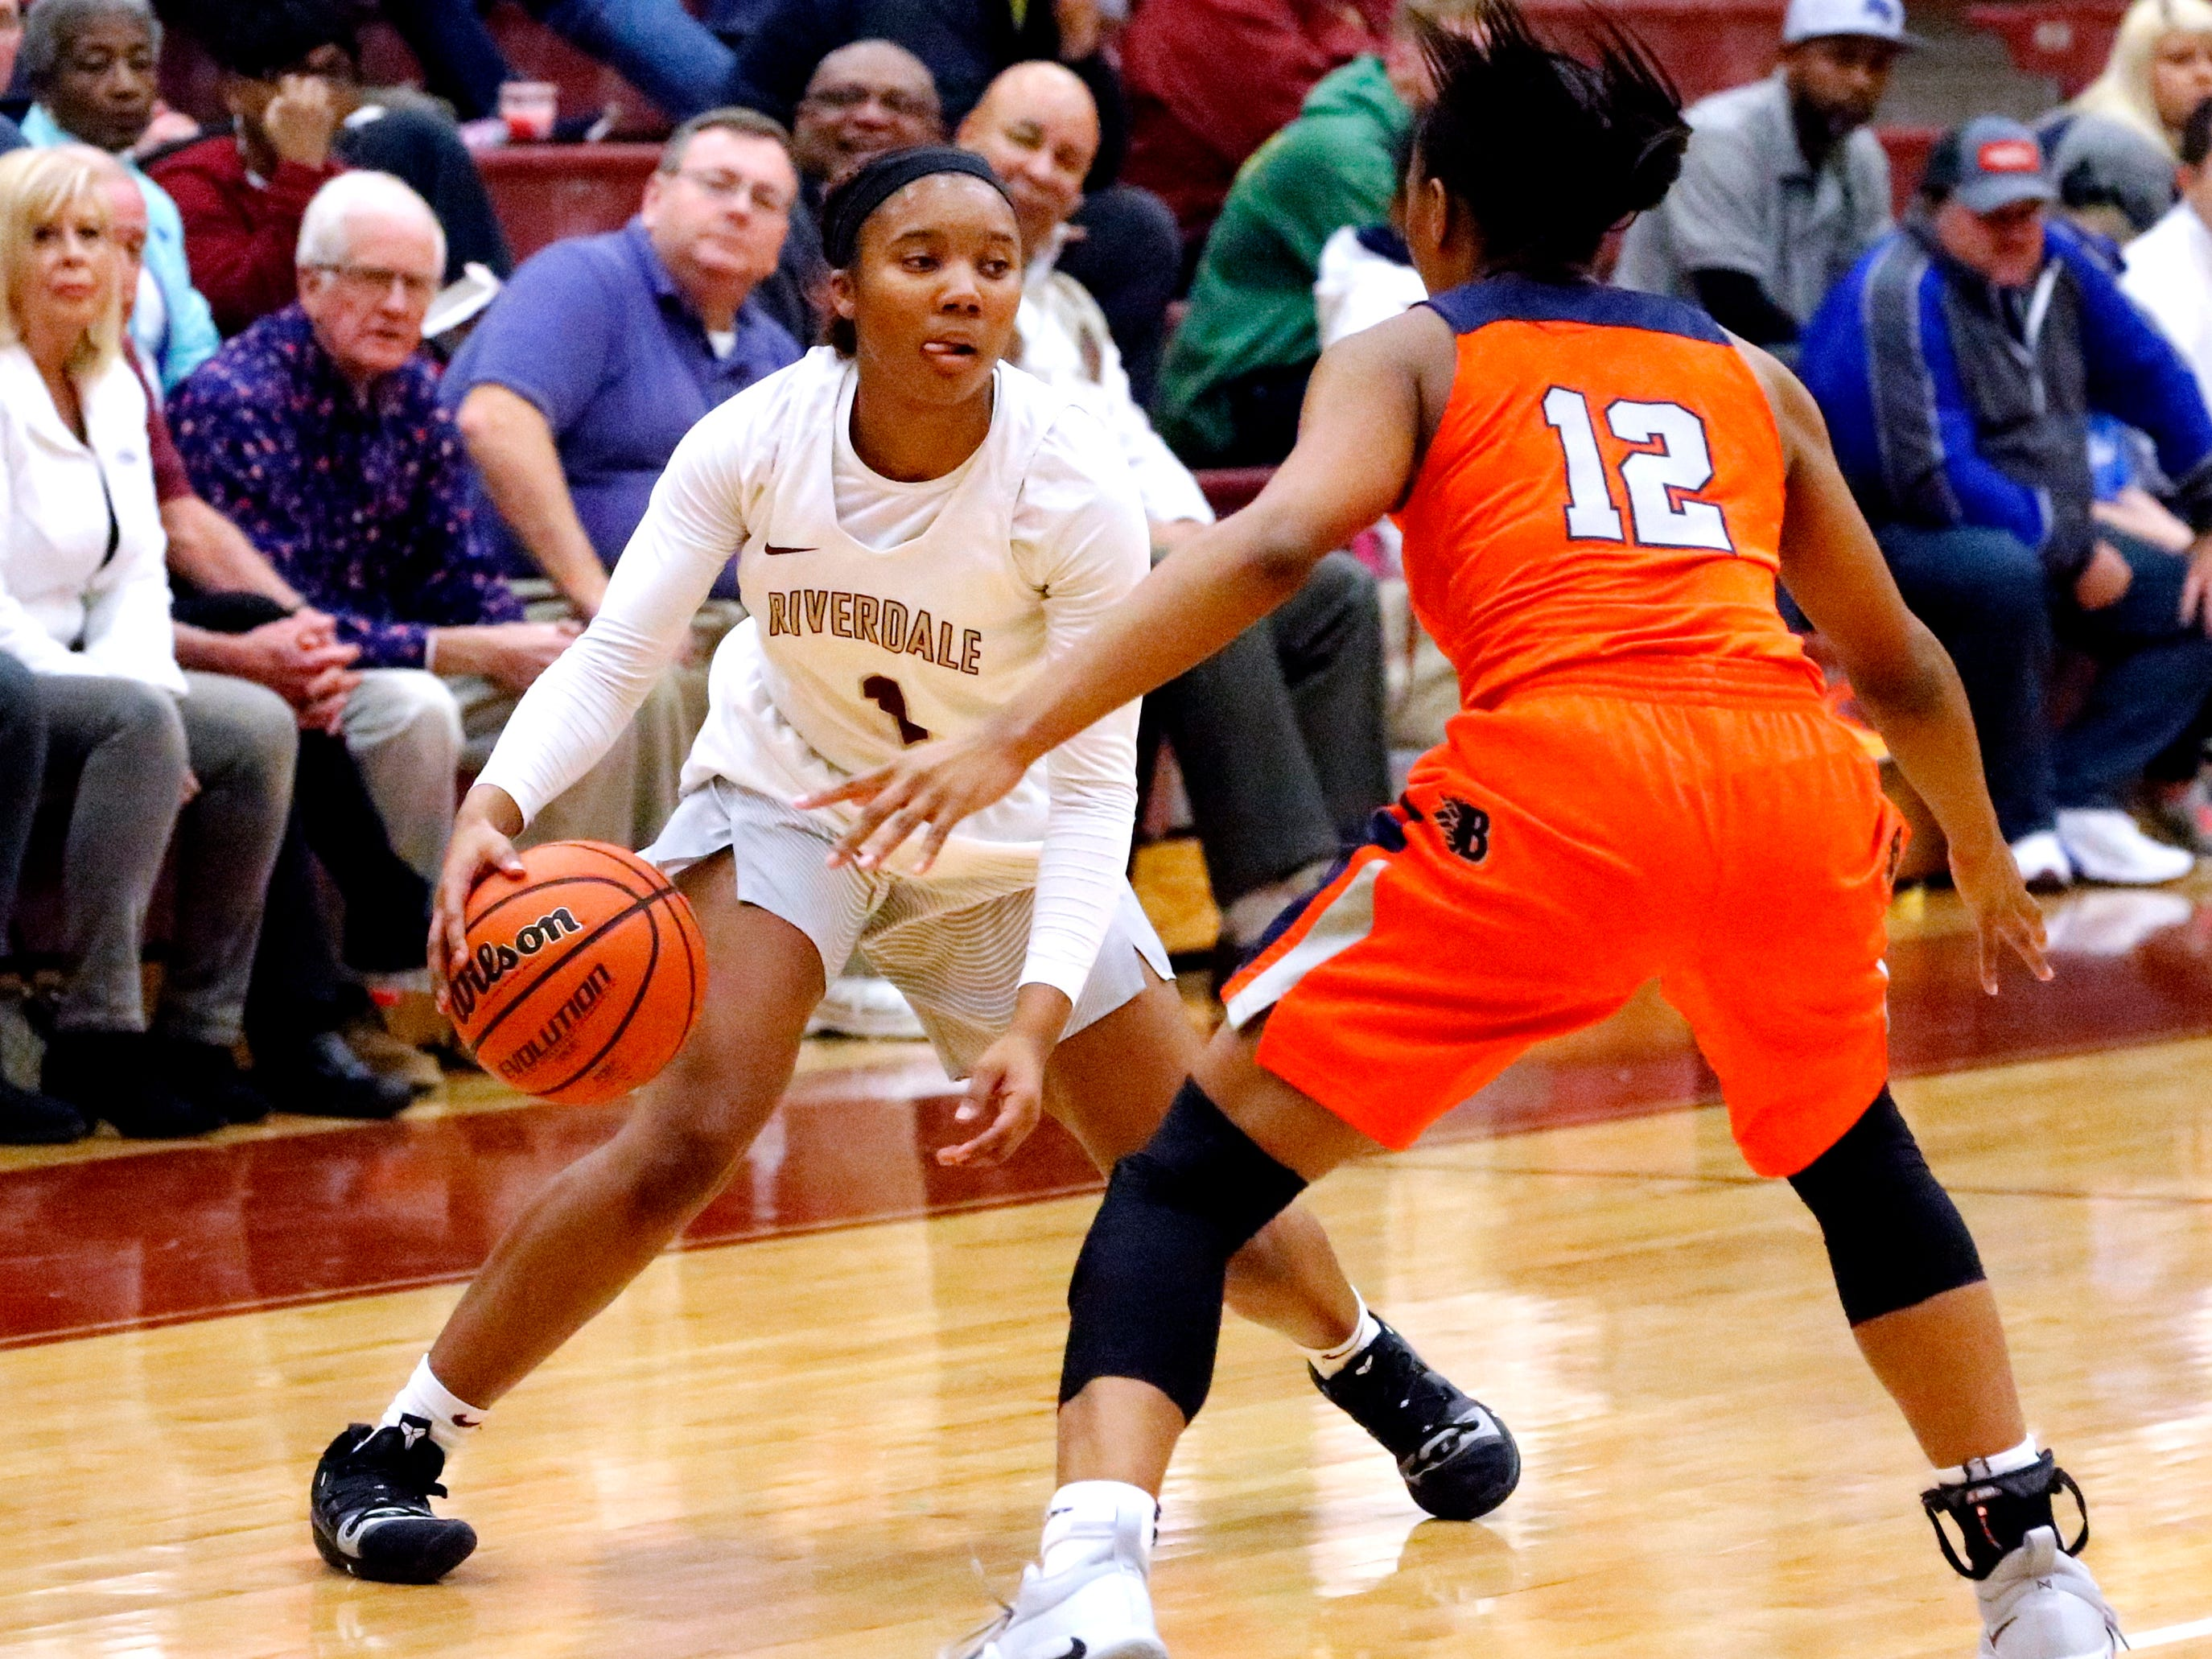 Riverdale's Alasia Hayes (1) moves the ball around the court as Blackman's Nia Vanzant (12) guards her on Tuesday Jan. 8, 2019.